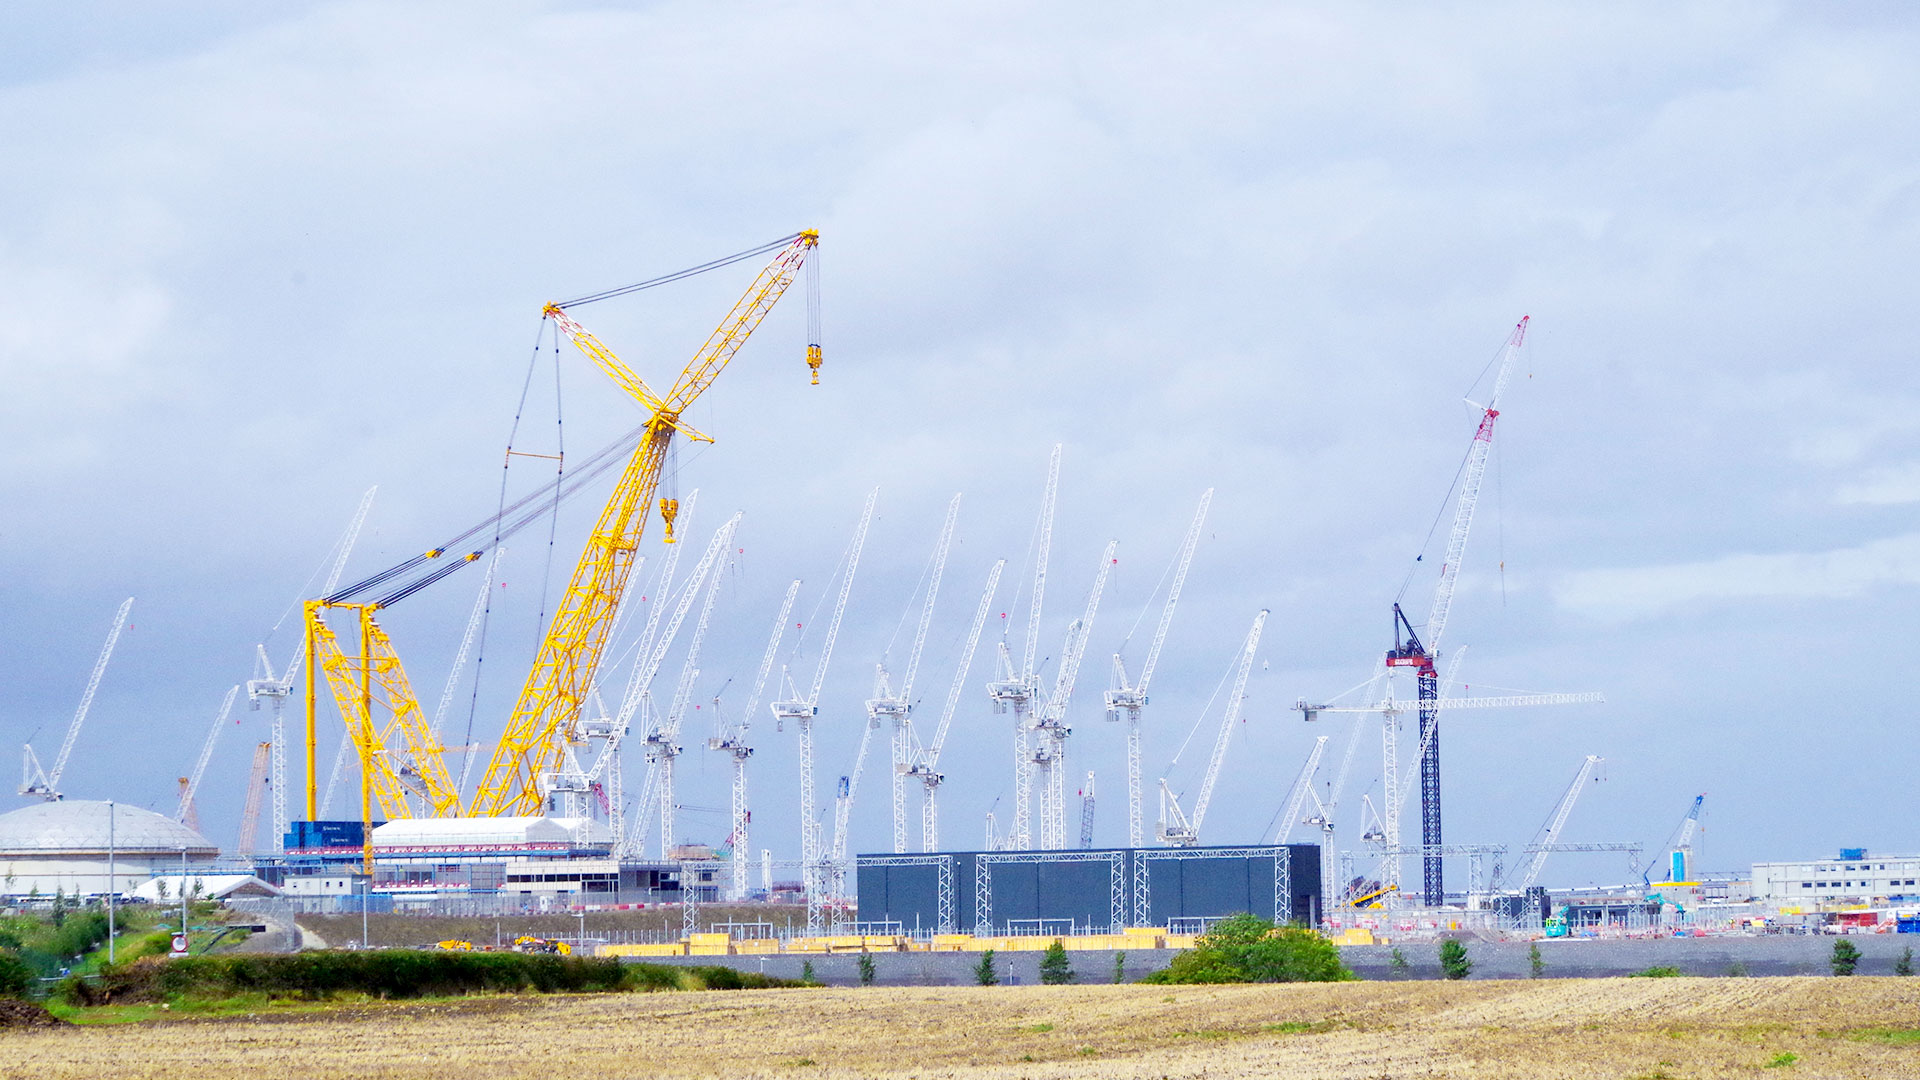 Hinkley C construction site Aug 2020 (photo credit: Jonathan Aylen)